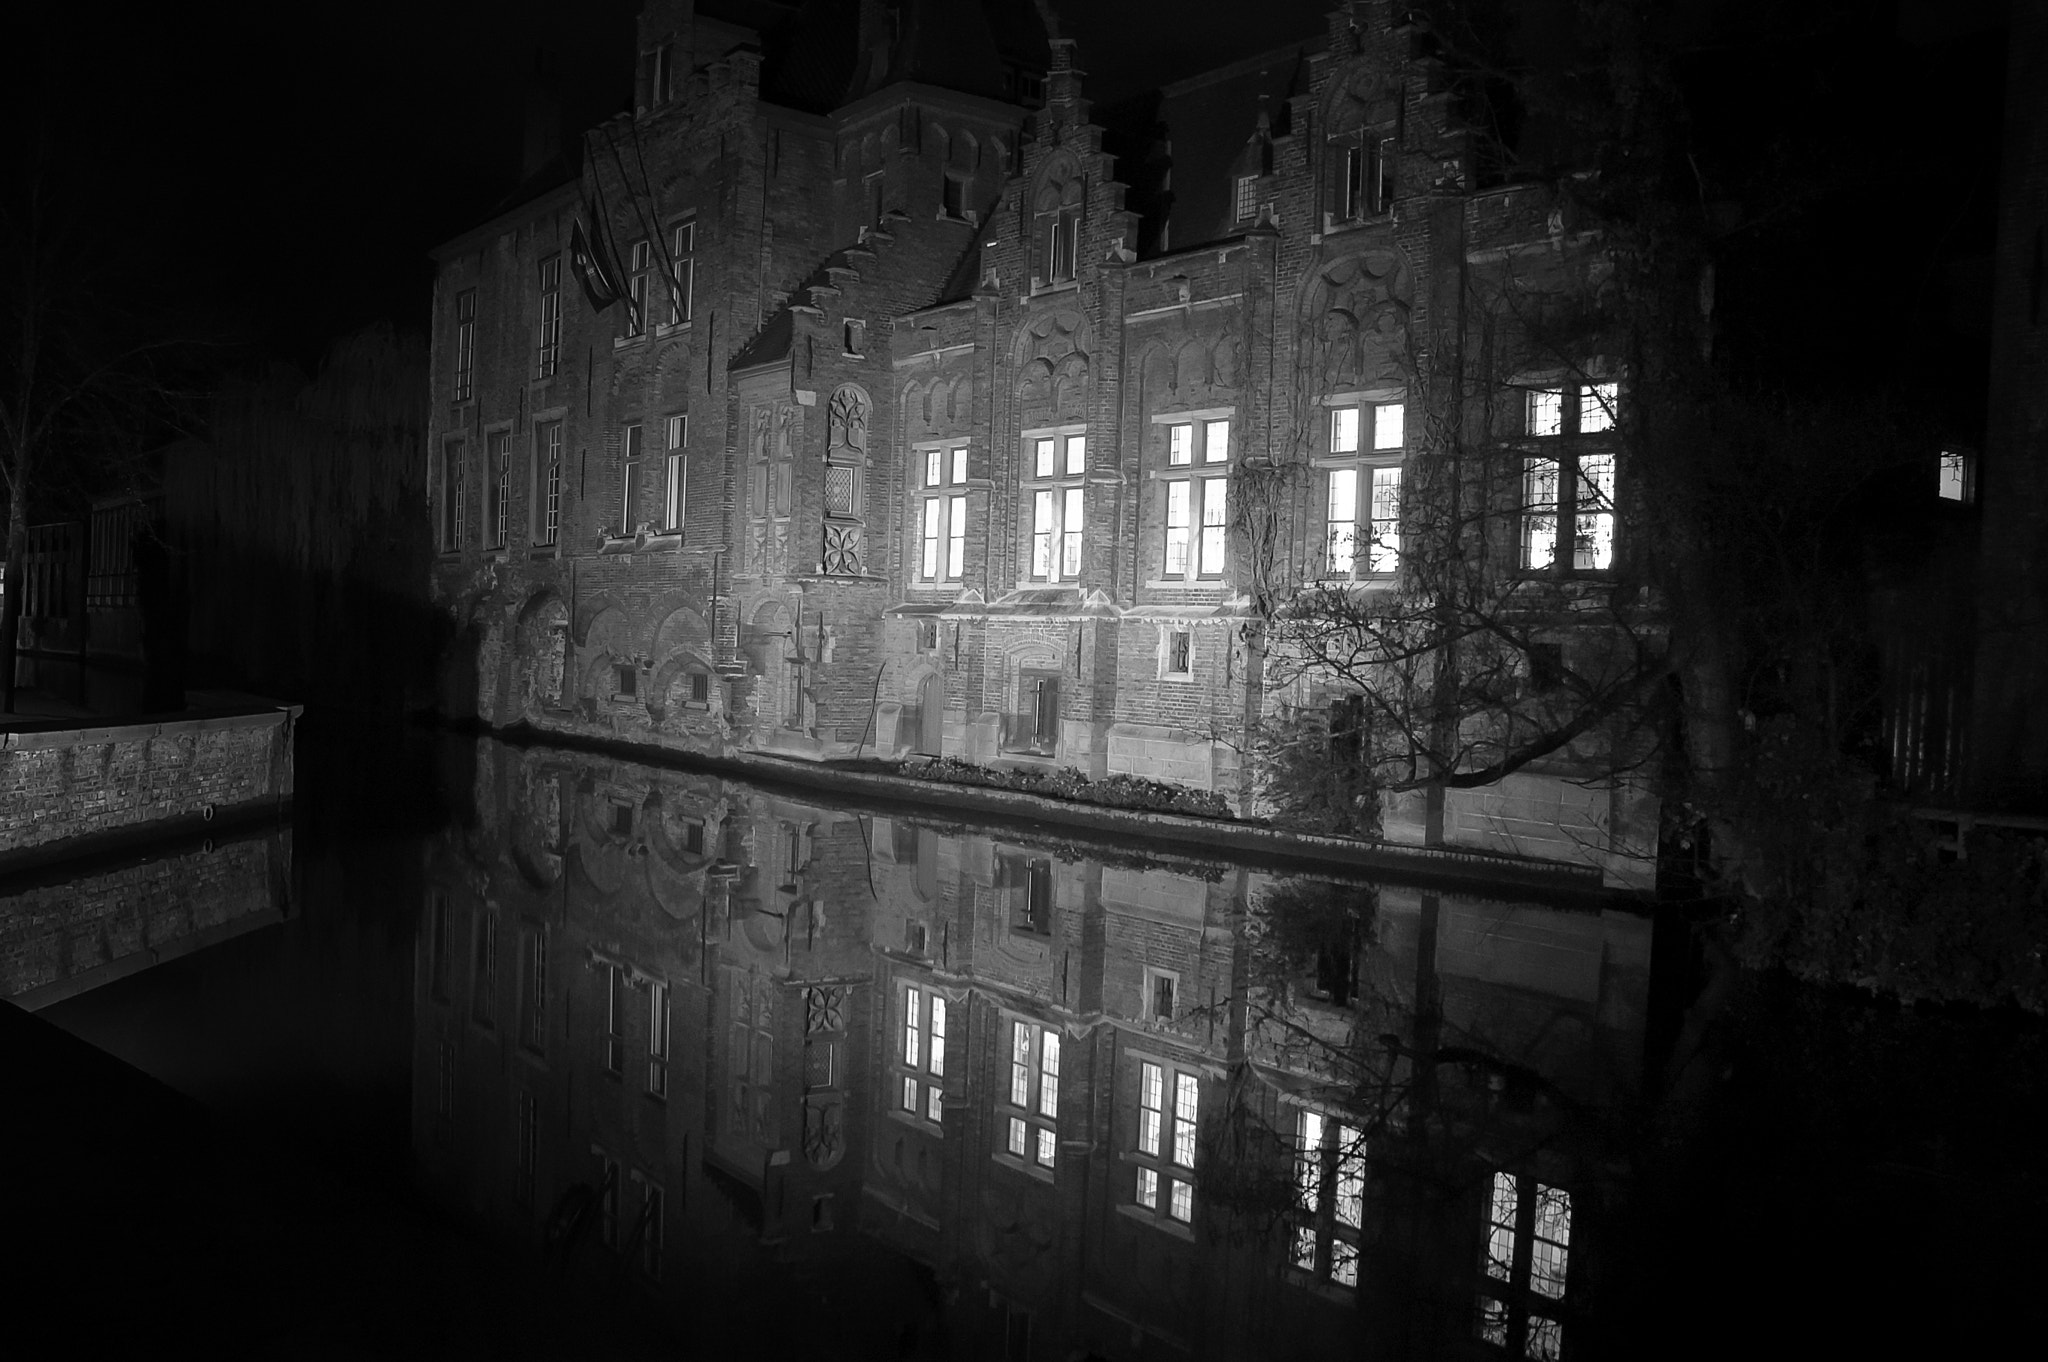 Photograph Brugge - reflections by Magdalena Warmuz-Dent on 500px